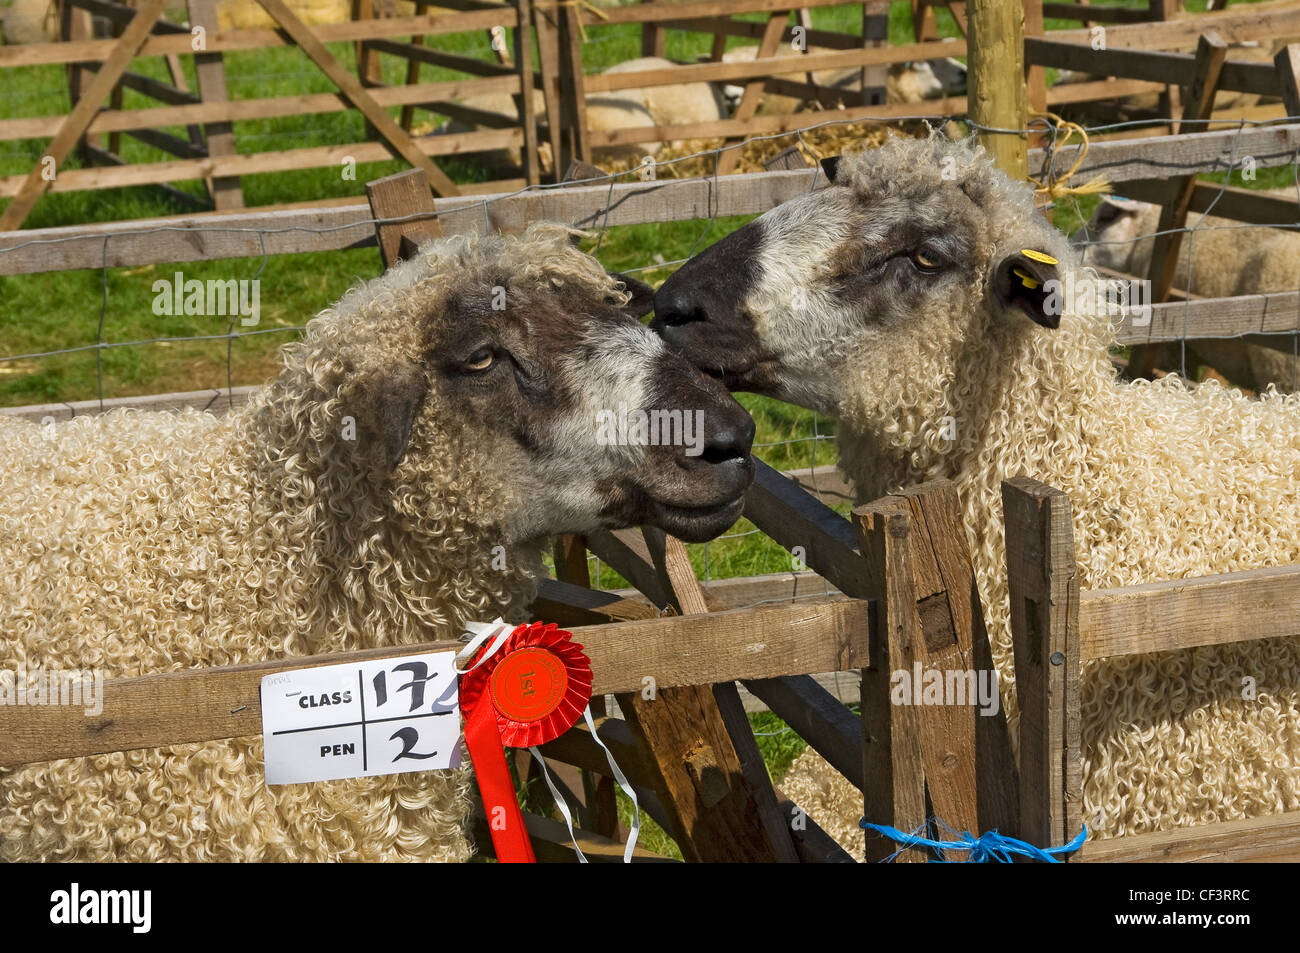 Prize winning sheep in a pen at Gargrave Show, an annual country show near Skipton. - Stock Image